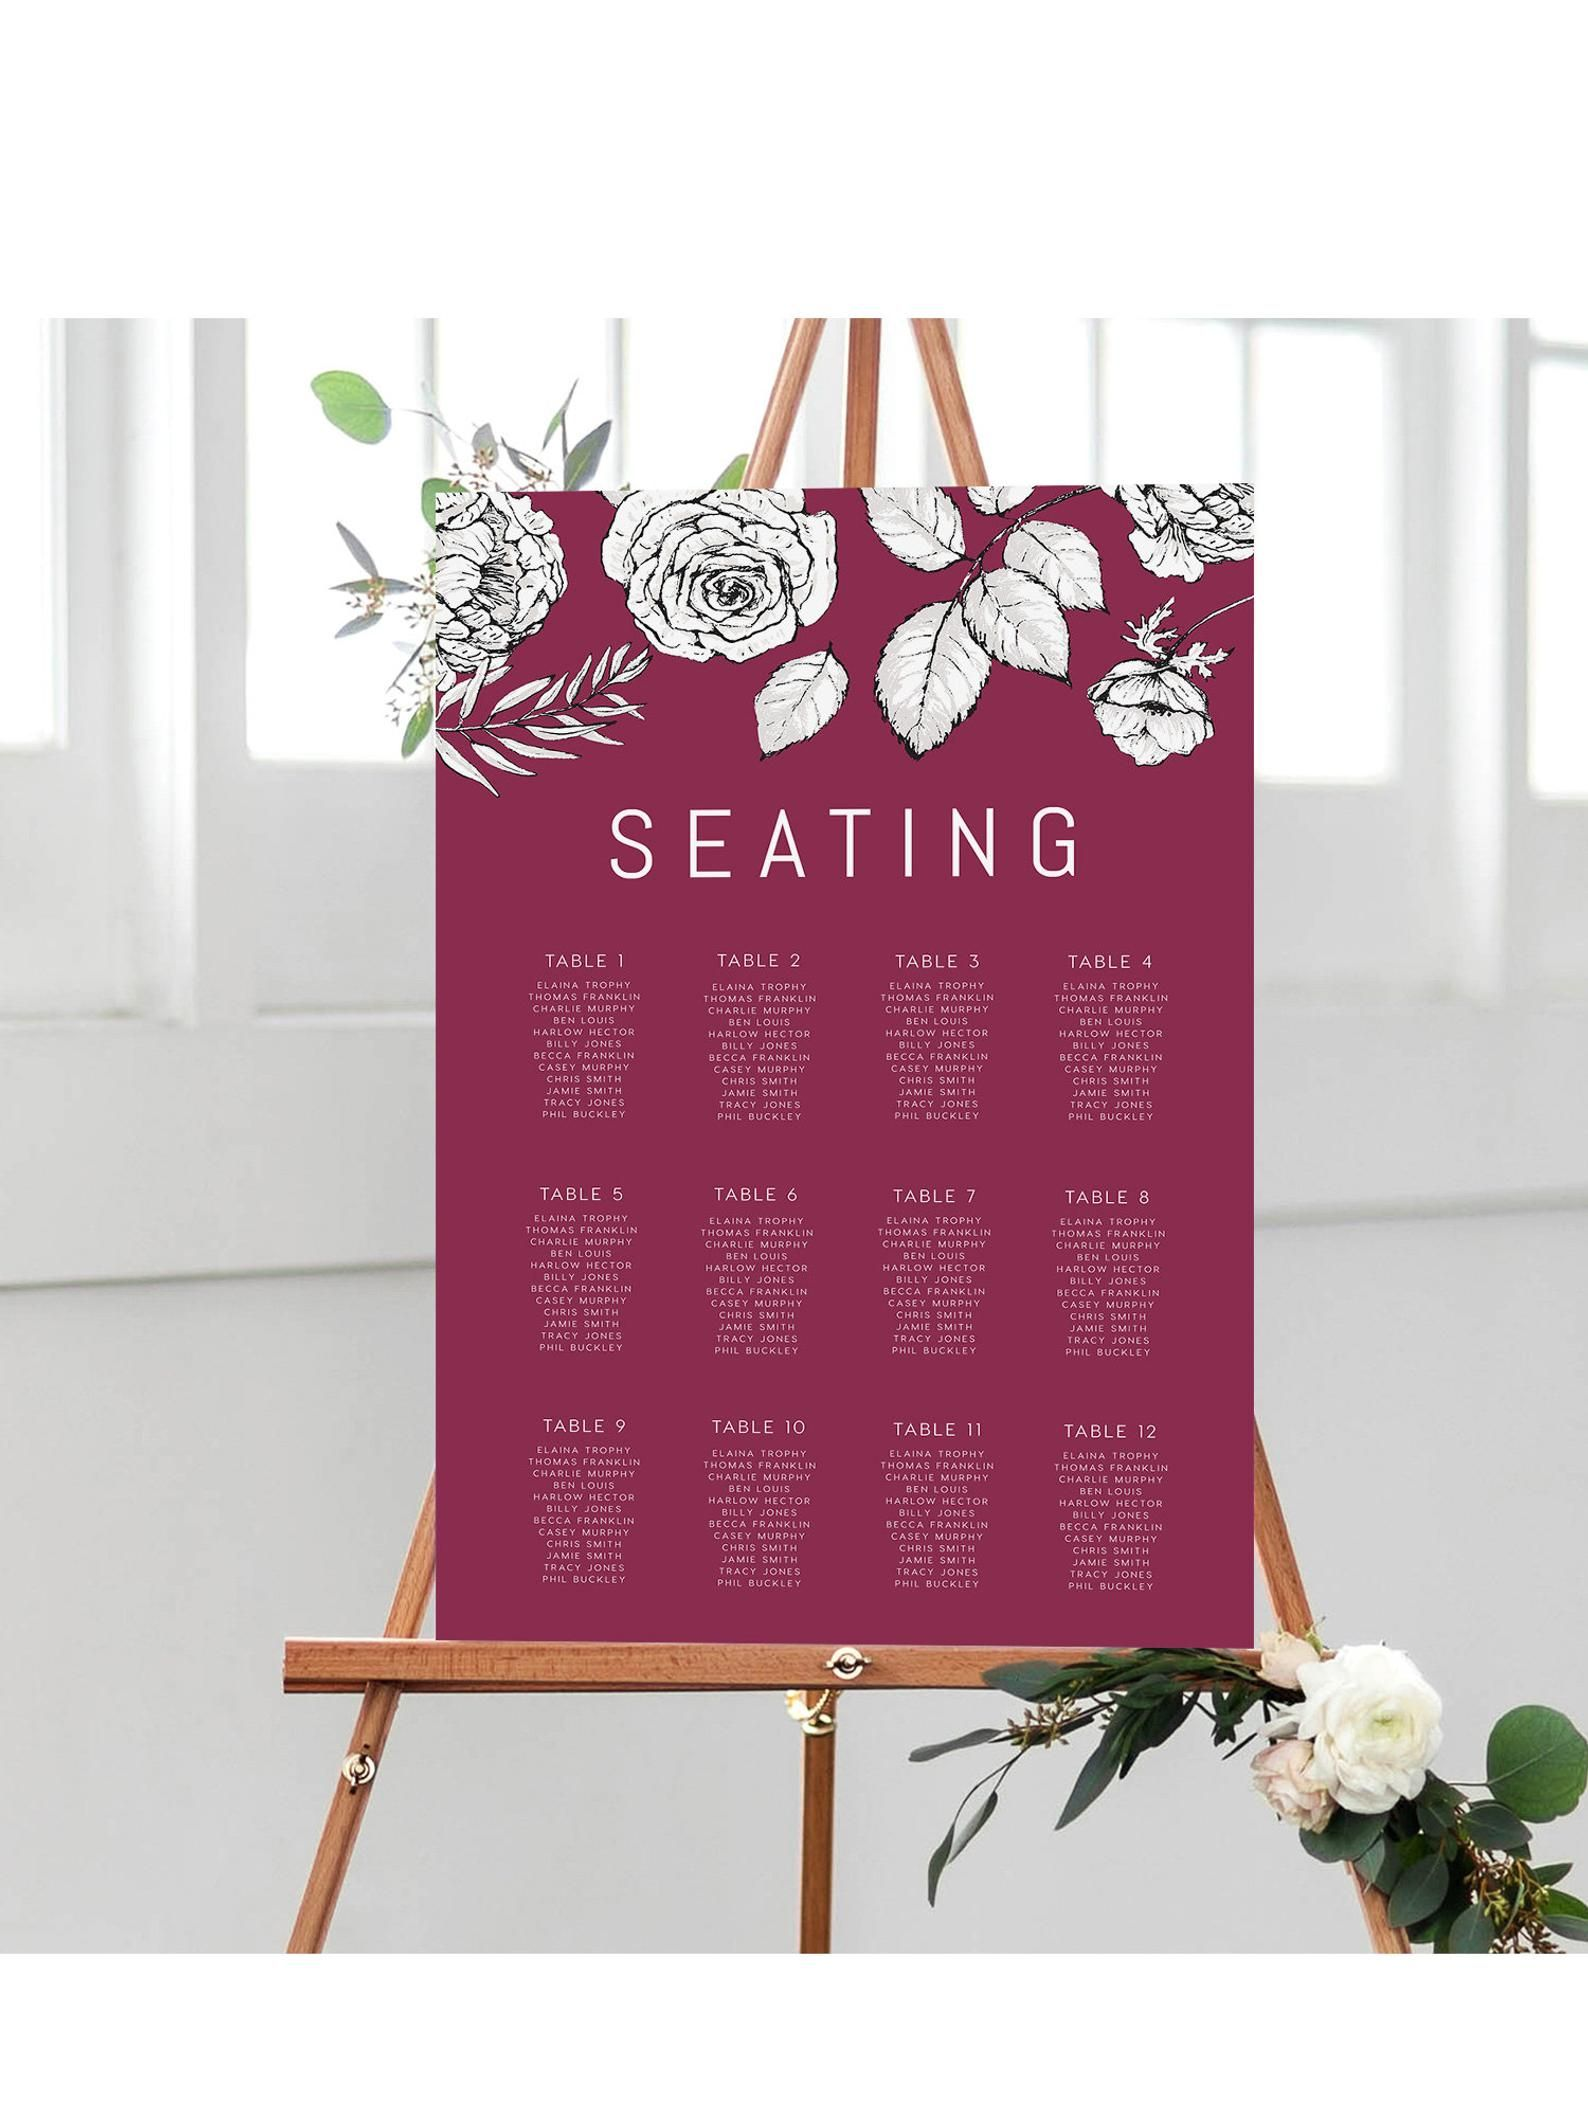 Seating Chart Instant Download Portrait Sign Signage Table Etsy Seating Charts Seating Chart Template Wedding Signage